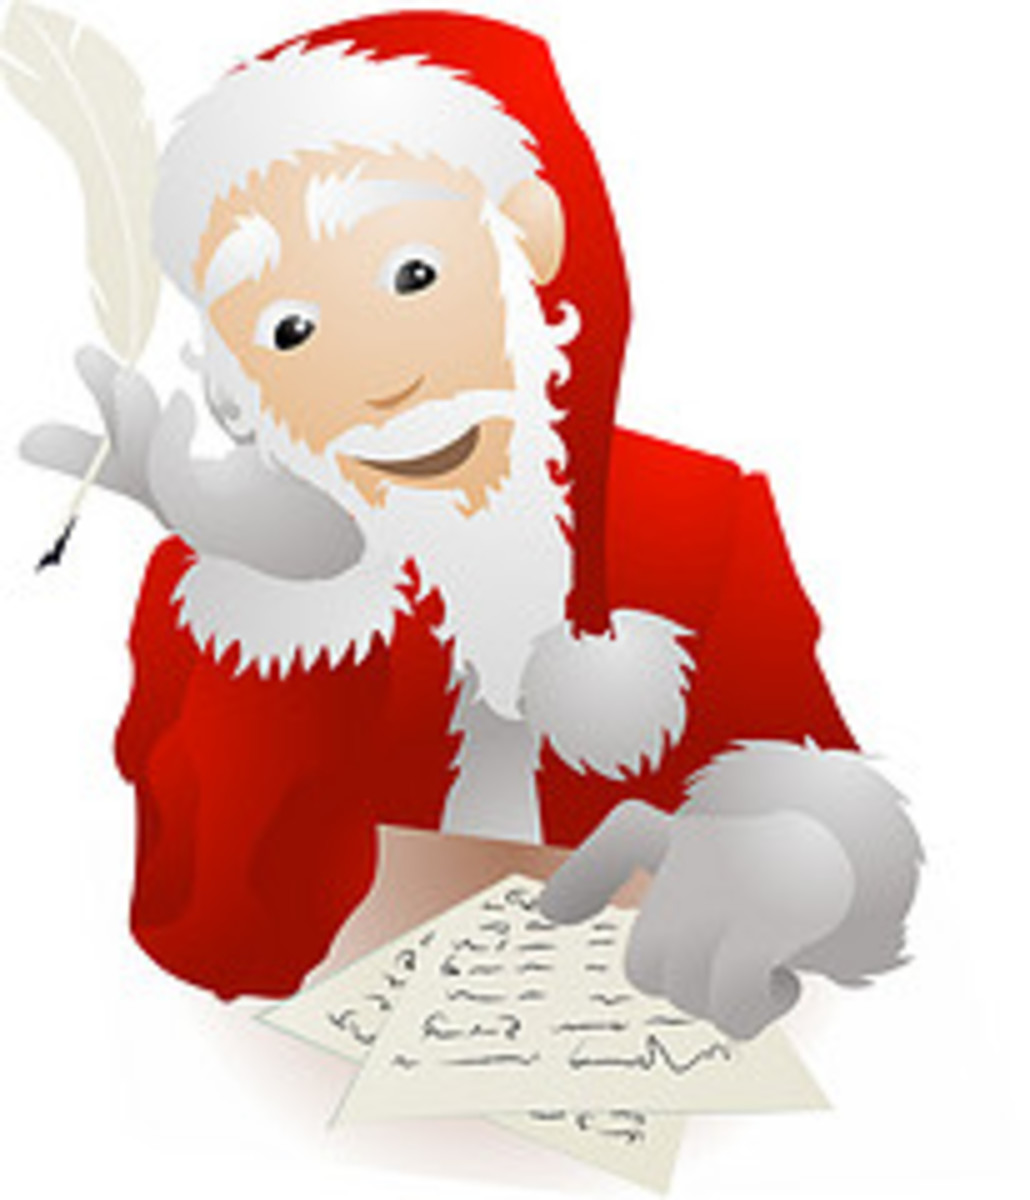 Printable Santa letters also have pros and cons.